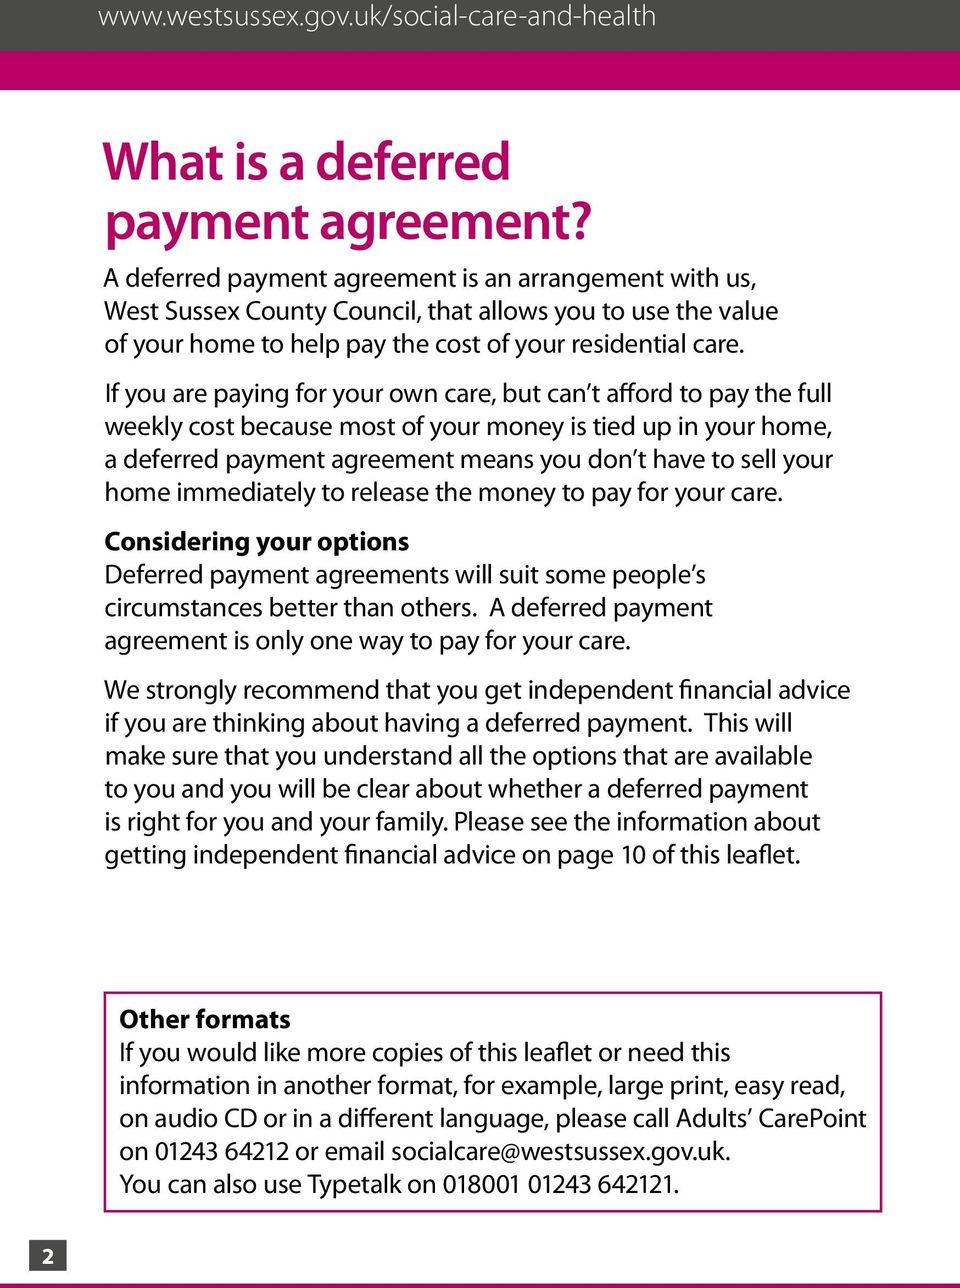 If you are paying for your own care, but can t afford to pay the full weekly cost because most of your money is tied up in your home, a deferred payment agreement means you don t have to sell your